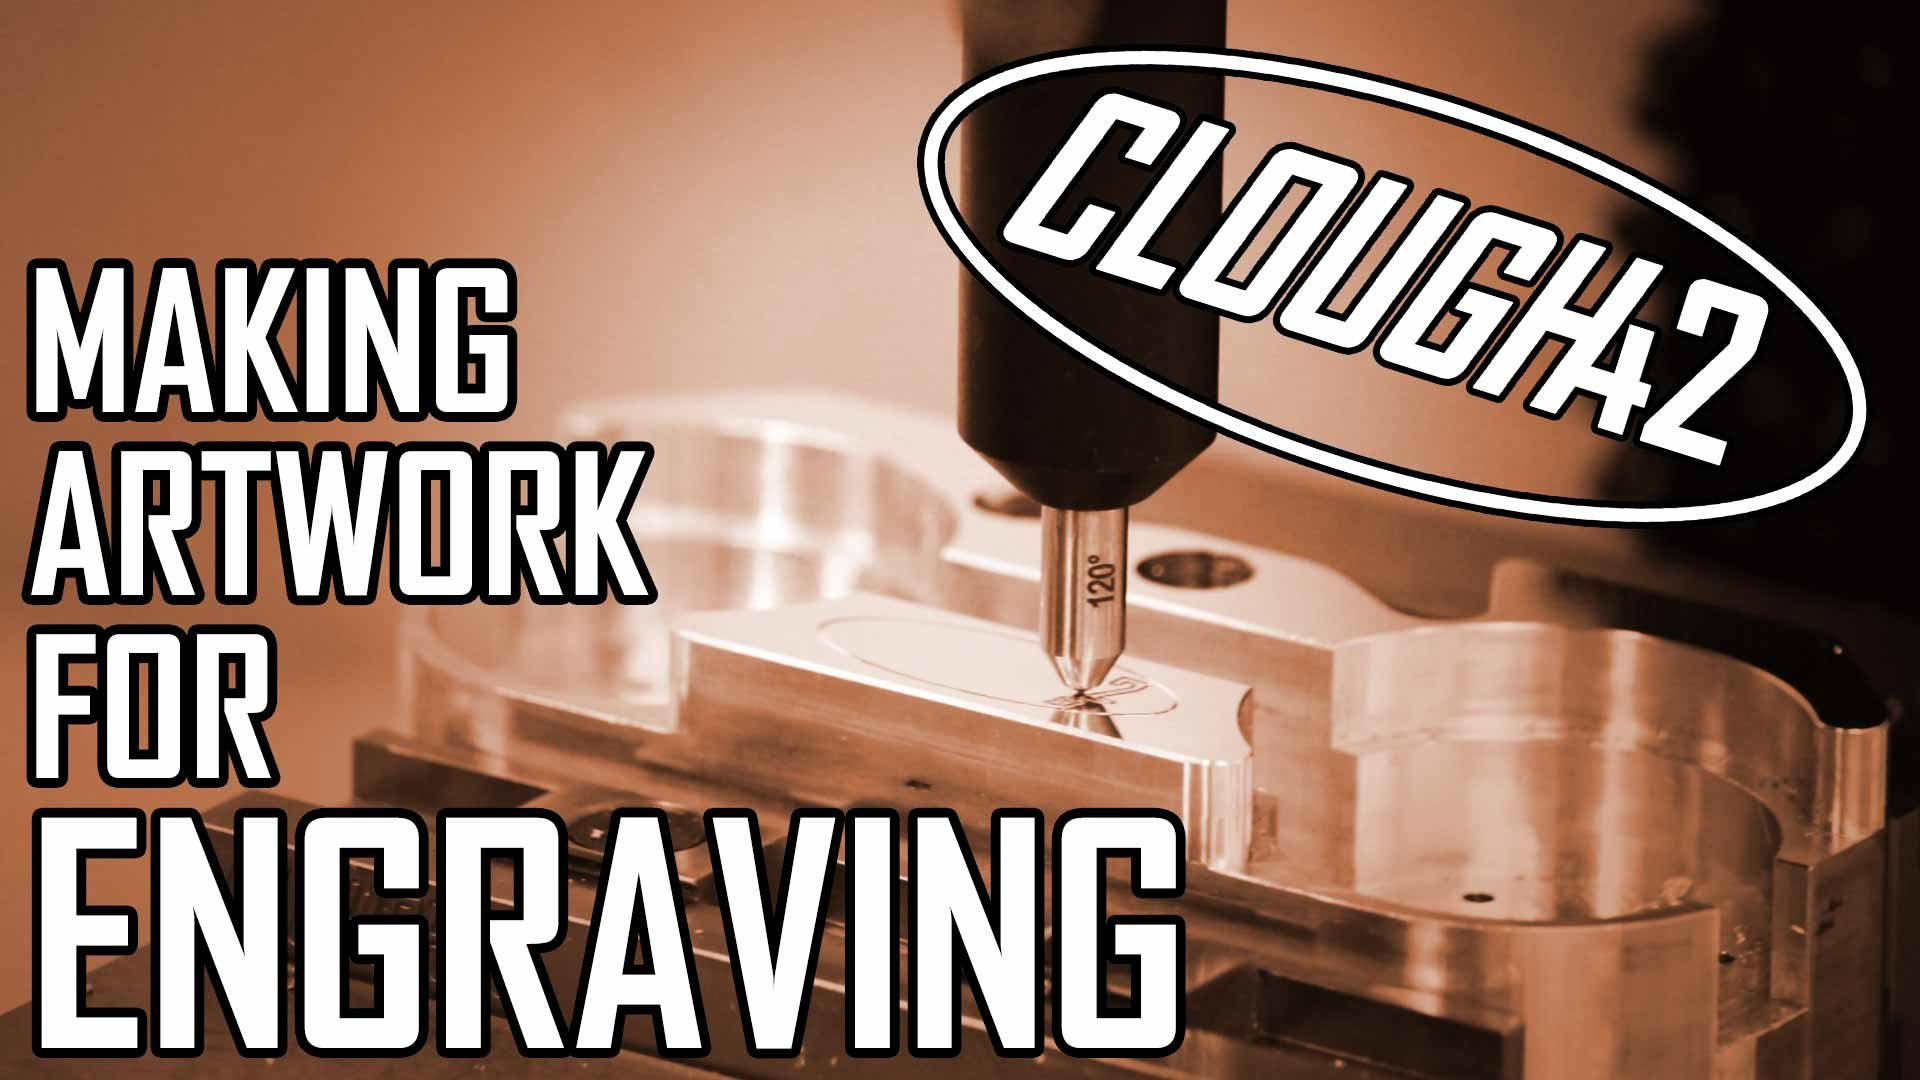 How to Make Artwork for CNC Engraving Using Free Software